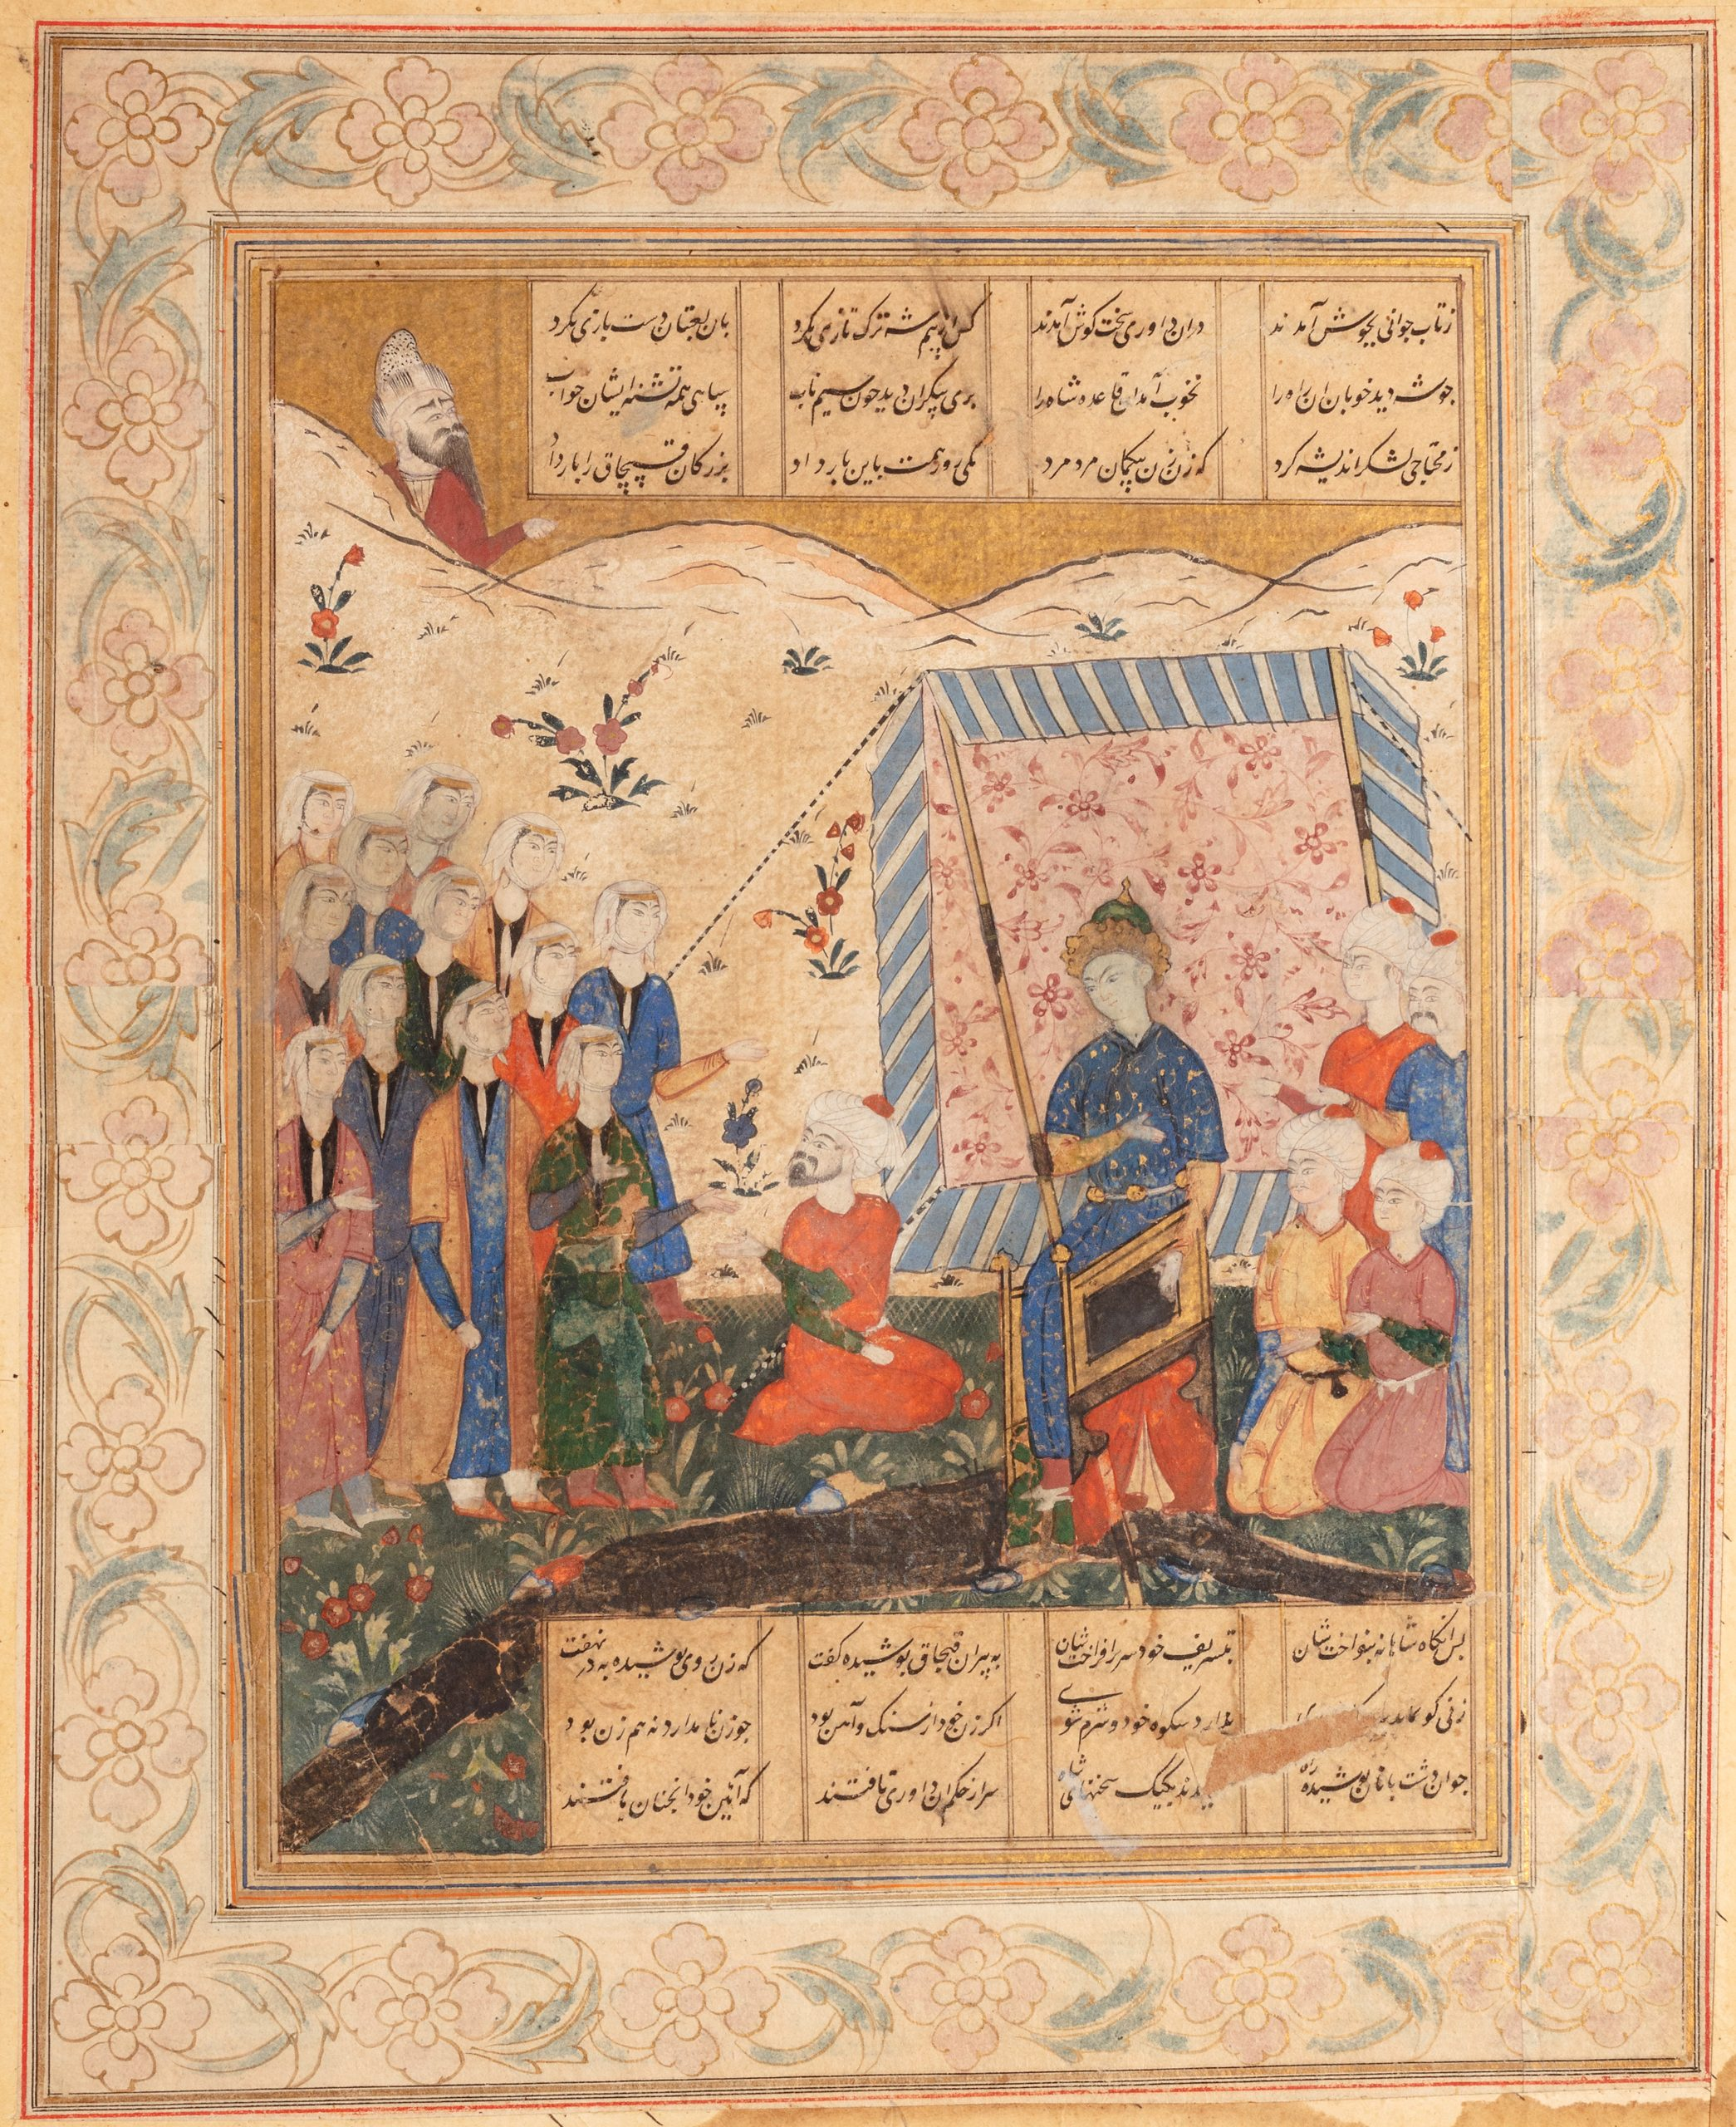 Image Of Art That Features Many People Crowded Around A Man Under A Tent. Arabic Script Is Above And Below The Image